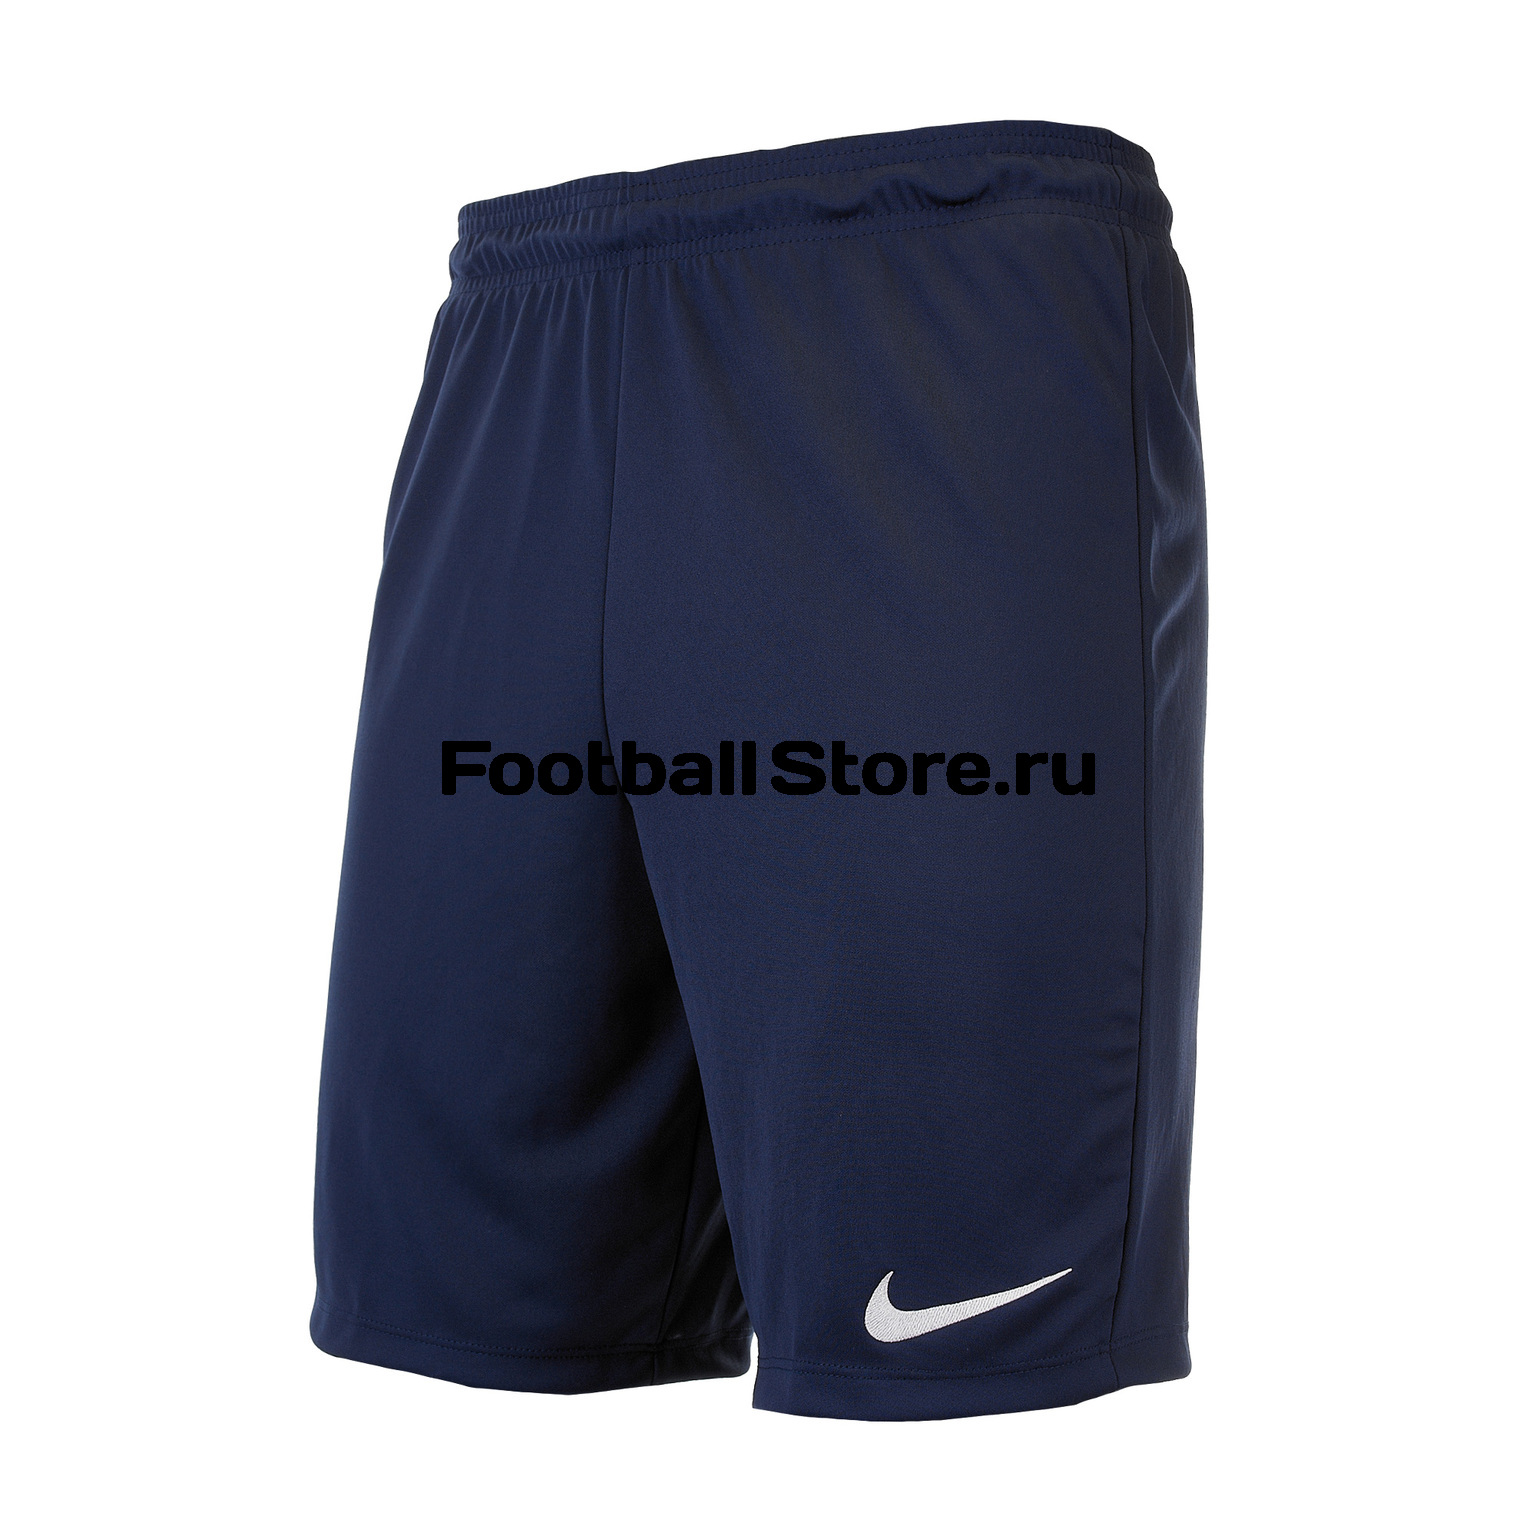 Шорты Nike Park II KNIT Short NB 725887-410 шорты nike шорты игровые nike park ii knit short wb 725903 410